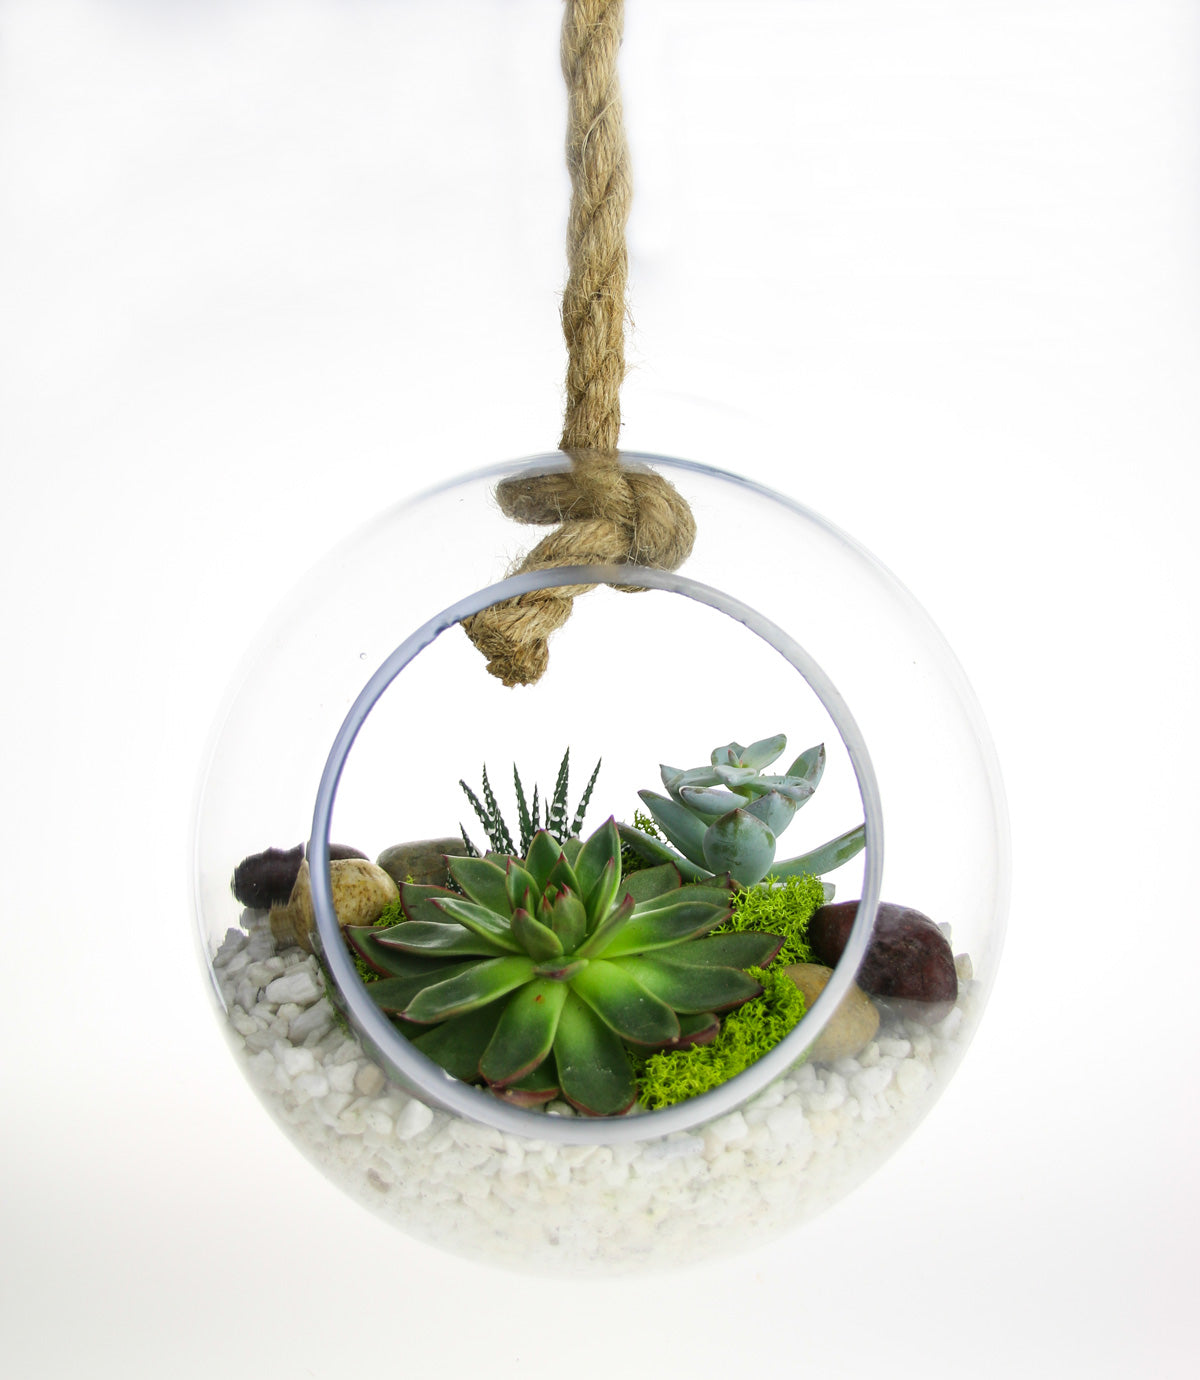 Glass Globe Hanging Terrarium With Real Succulent Plant Home Decor Ideas With Plants The Art Of Succulents